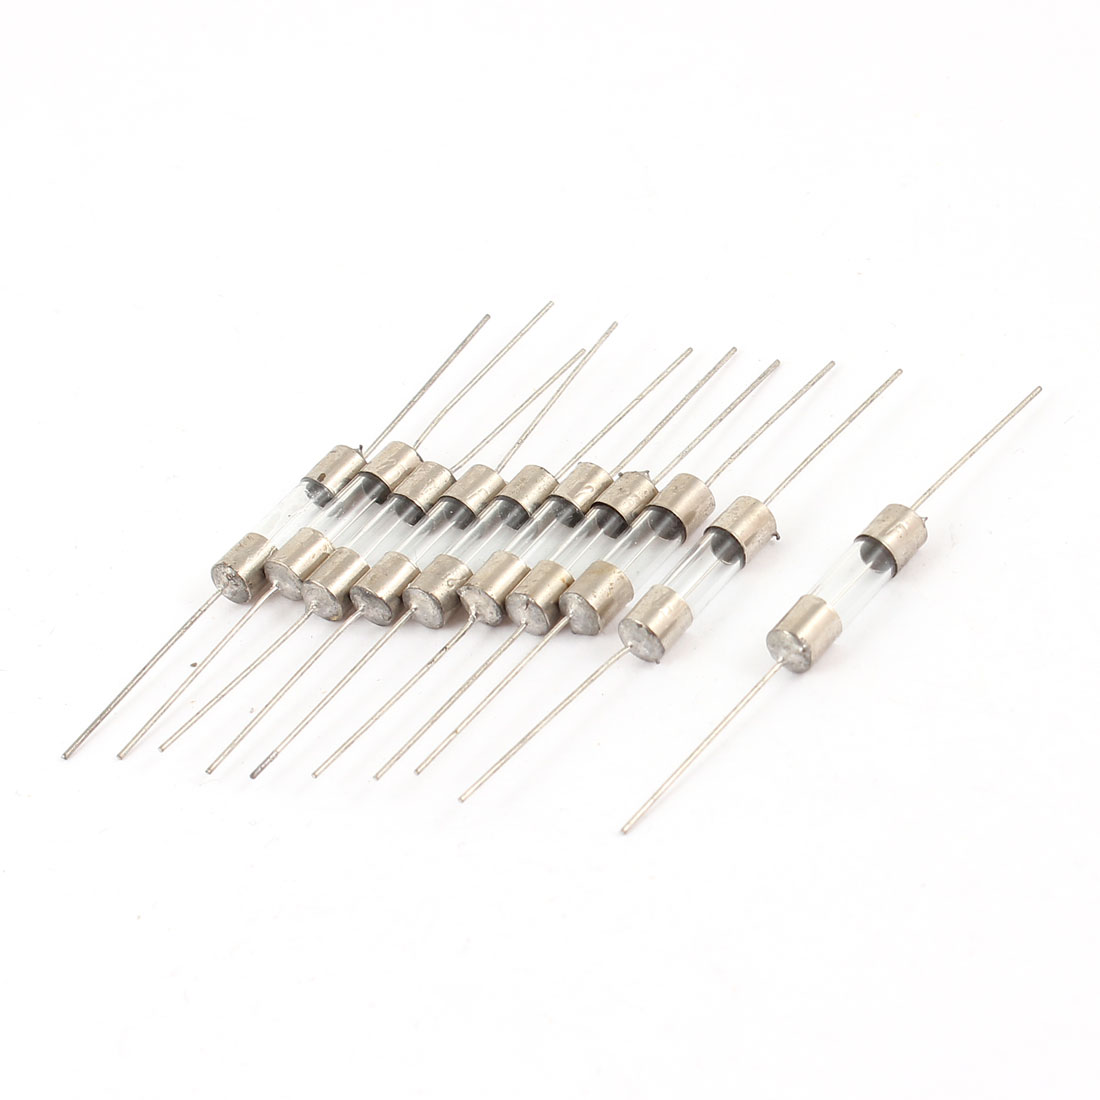 Axial Lead Fast Acting 5mm x 20mm Glass Fuse Tube 250V 15A 10 Pcs